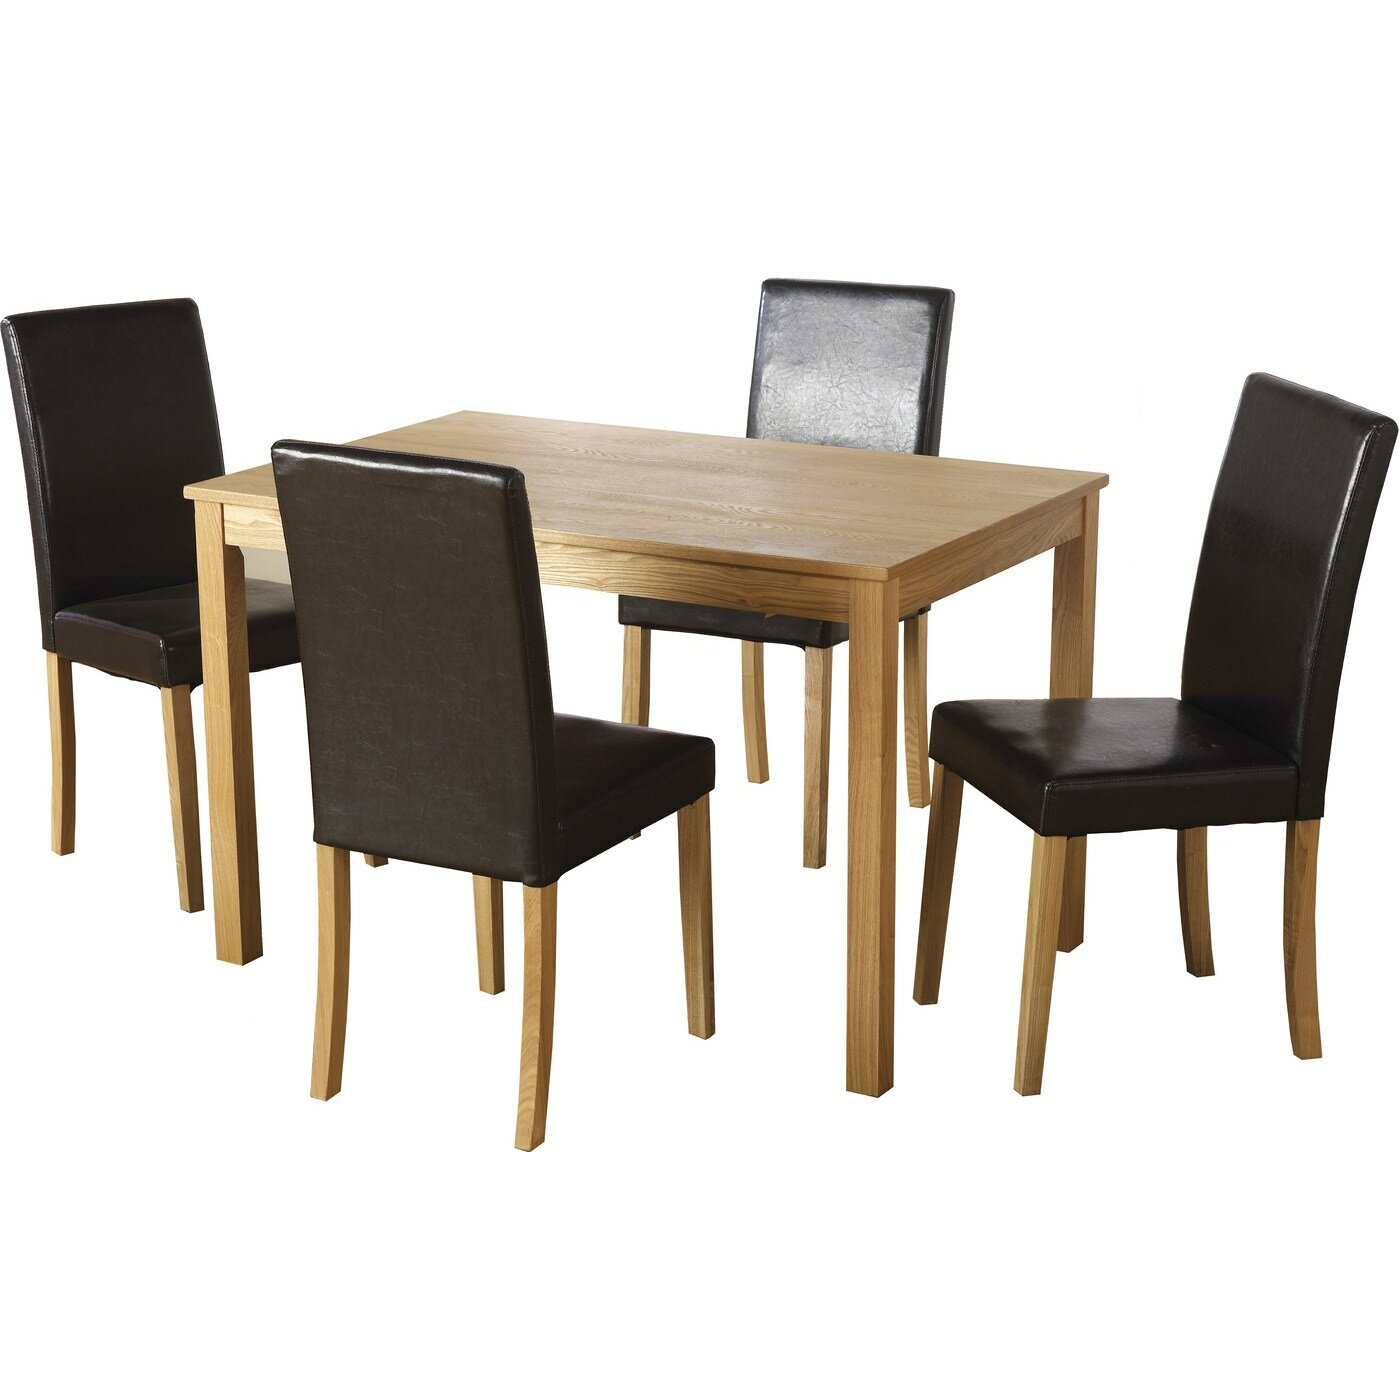 Anns dining table and 4 chairs wayfair uk for Breakfast table and chairs